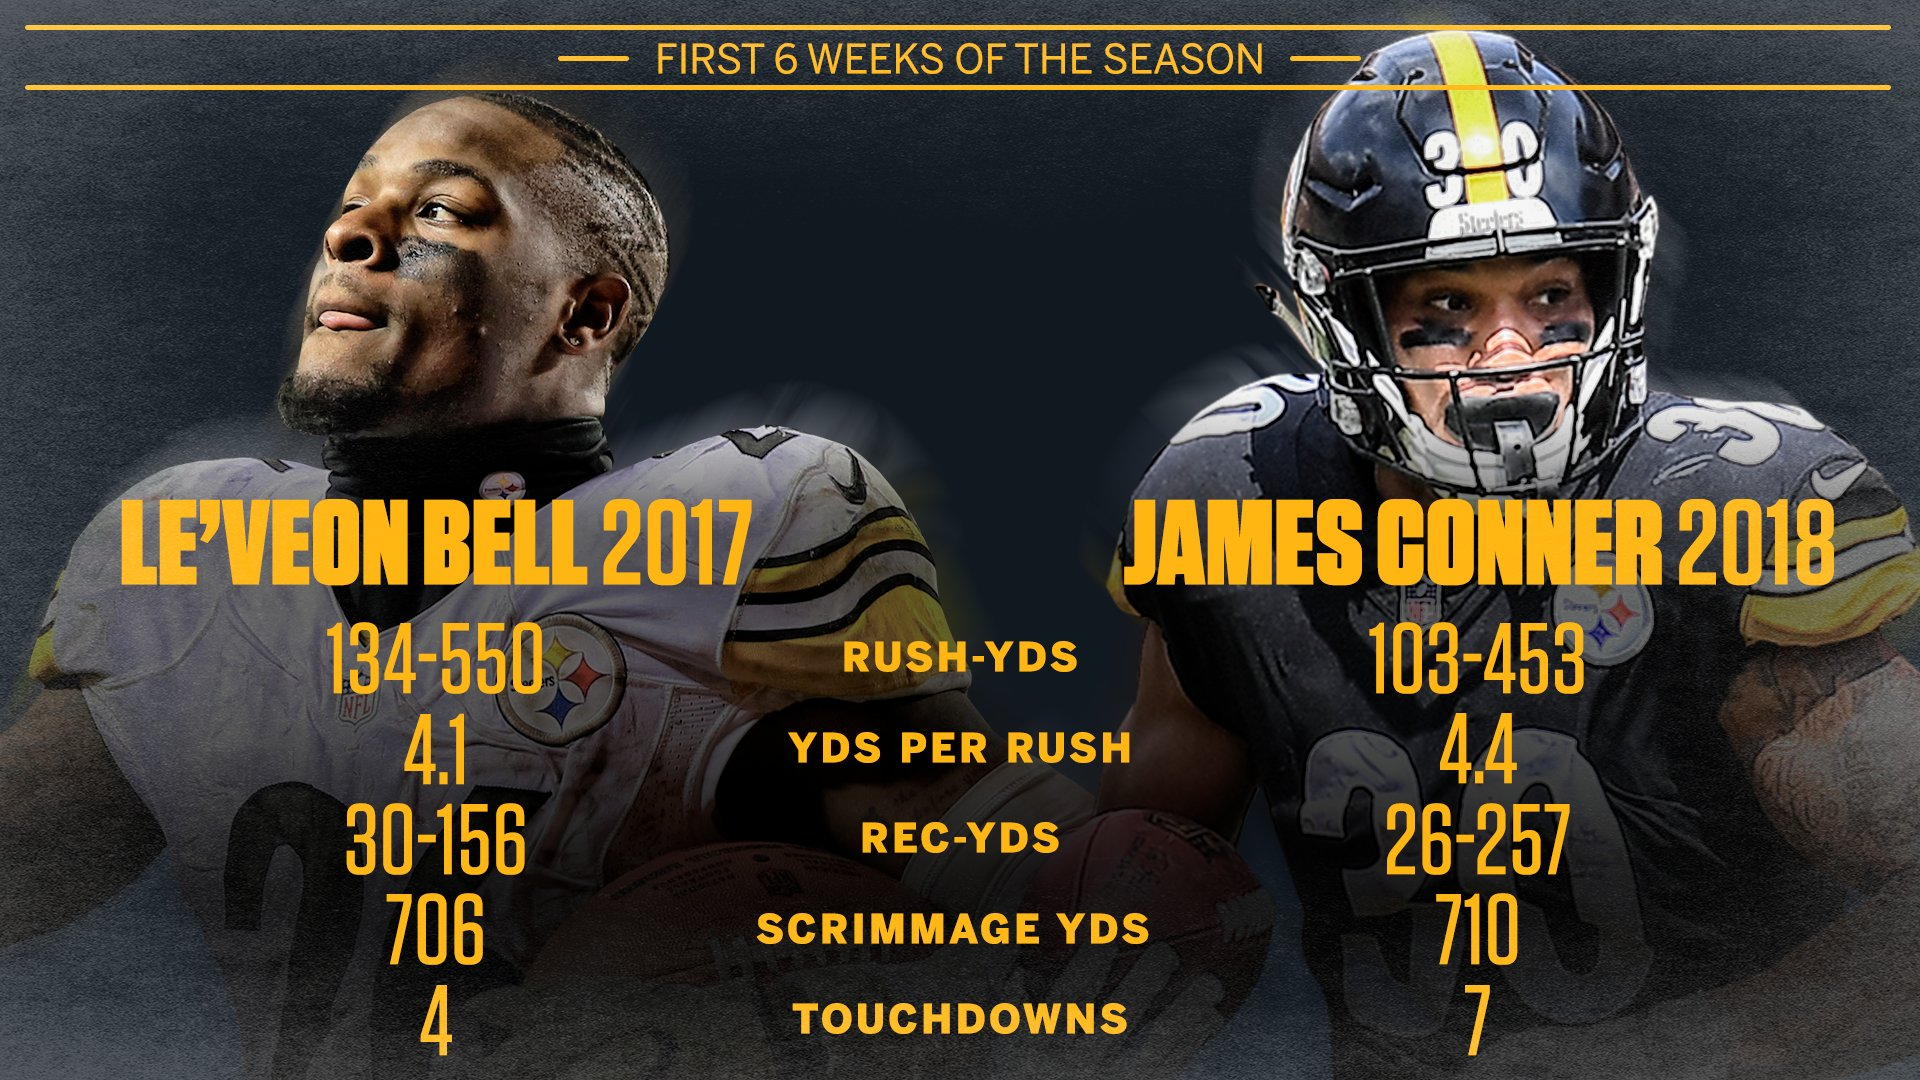 Six weeks in, James Conner's season nearly mirrors Le'Veon Bell's start in 2017. https://t.co/T6utHNYtPA